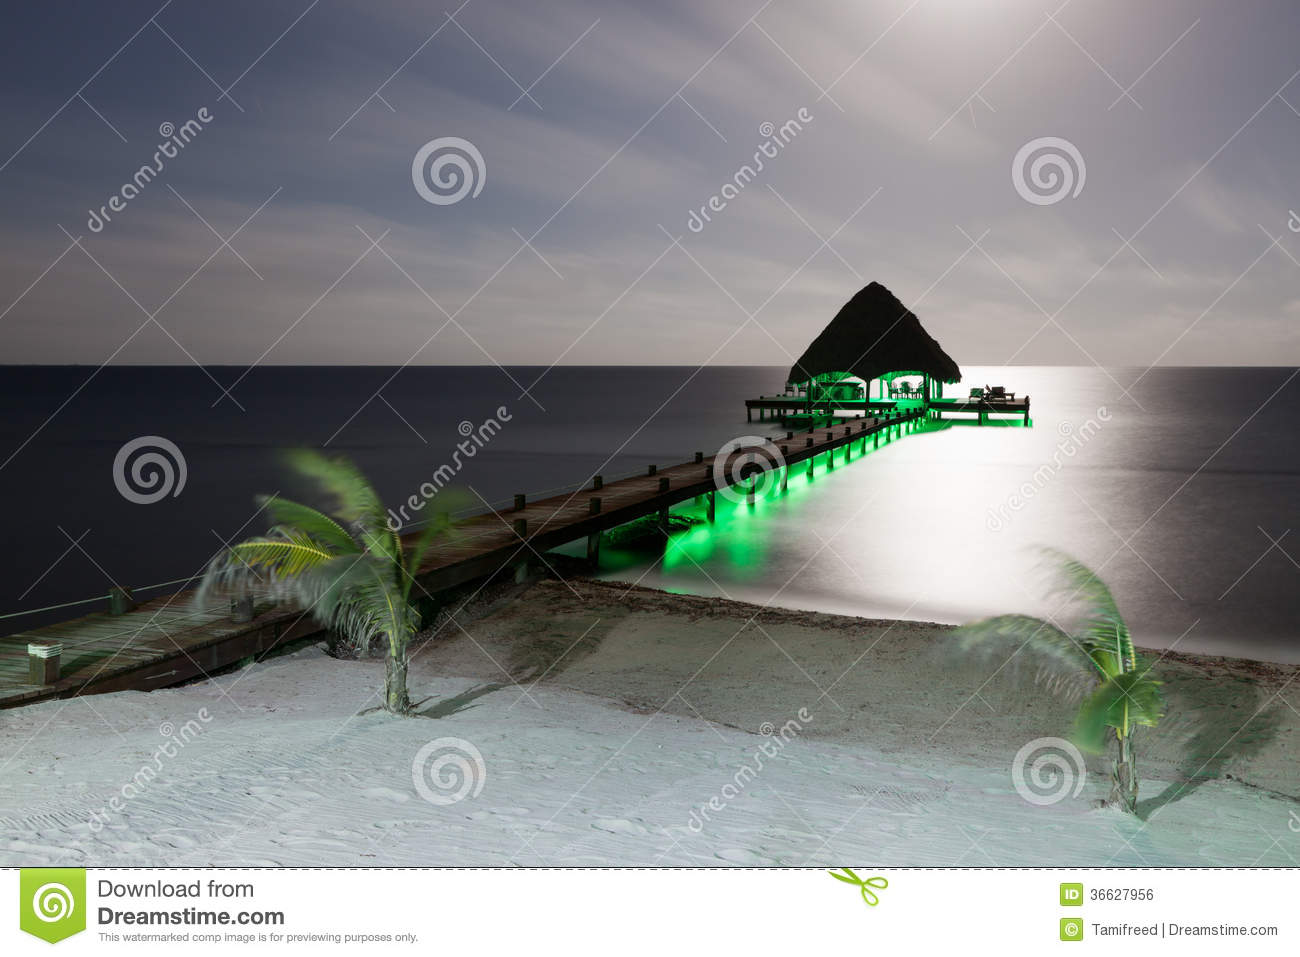 beach and dock with lights royalty free stock image - image: 36627956, Reel Combo